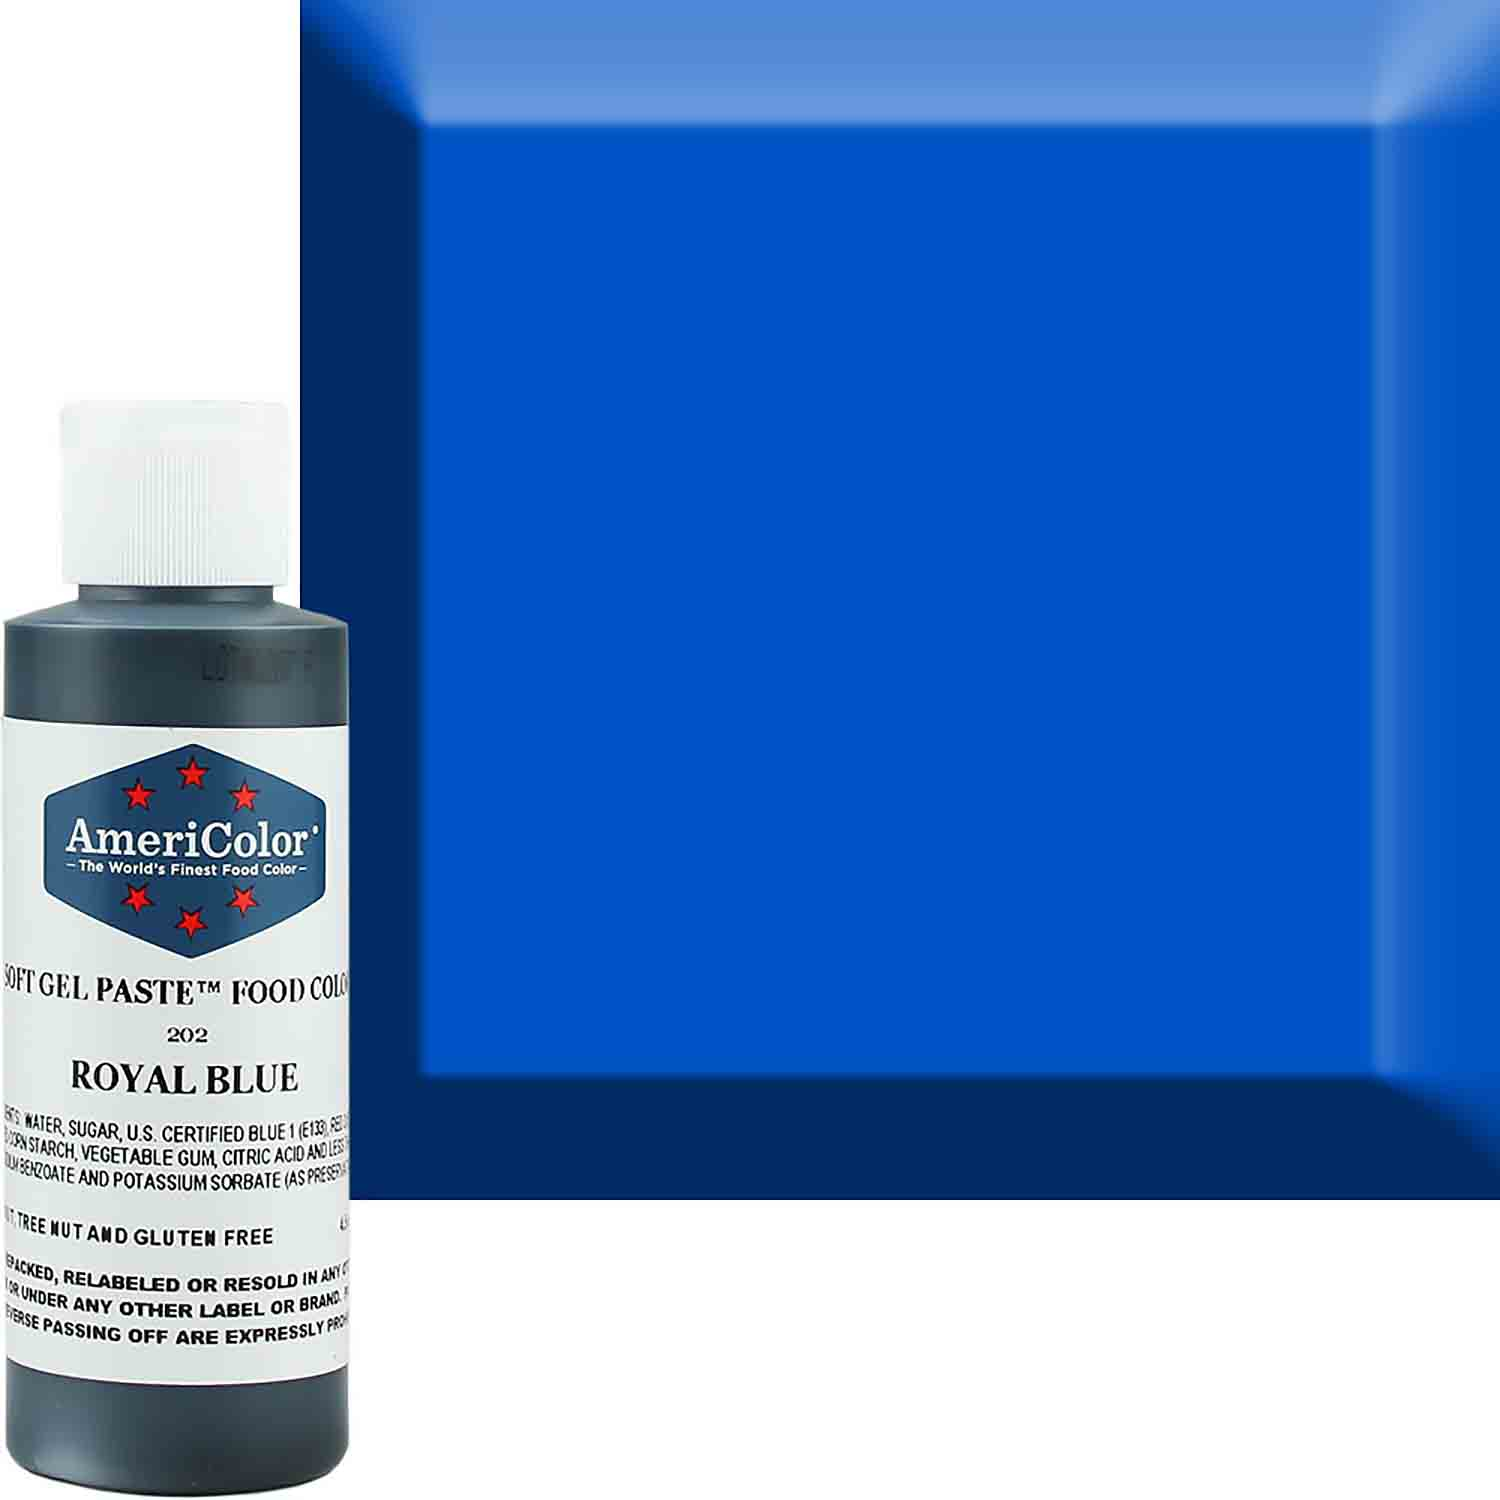 Royal Blue AmeriColor® Soft Gel Paste™ Food Color